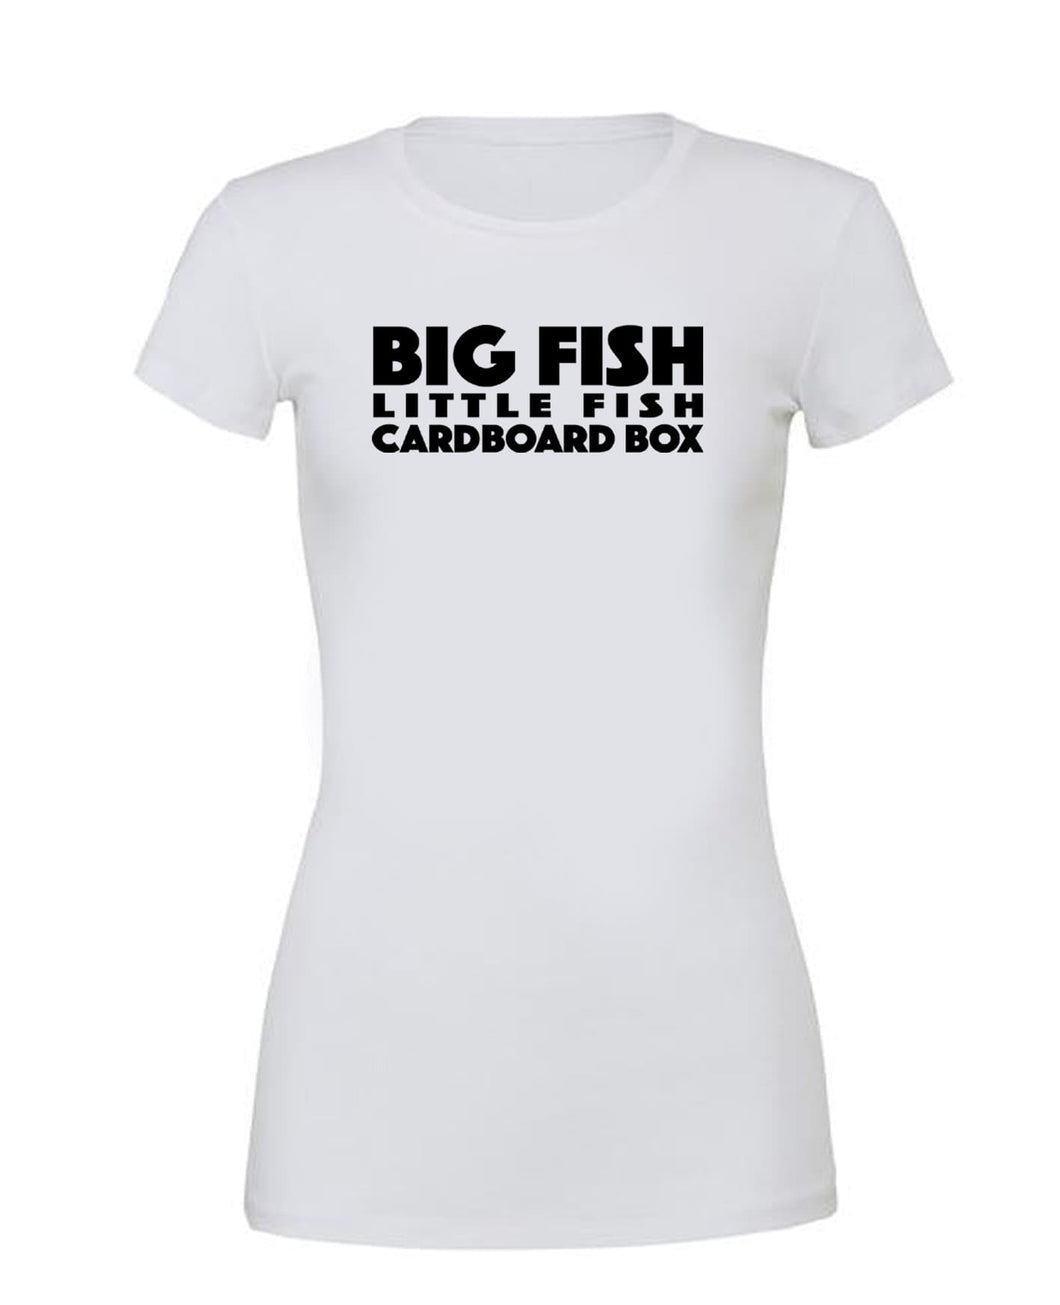 Big Fish Little Fish Cardboard Box - T Shirt White - SoreTodayStrongTomorrow